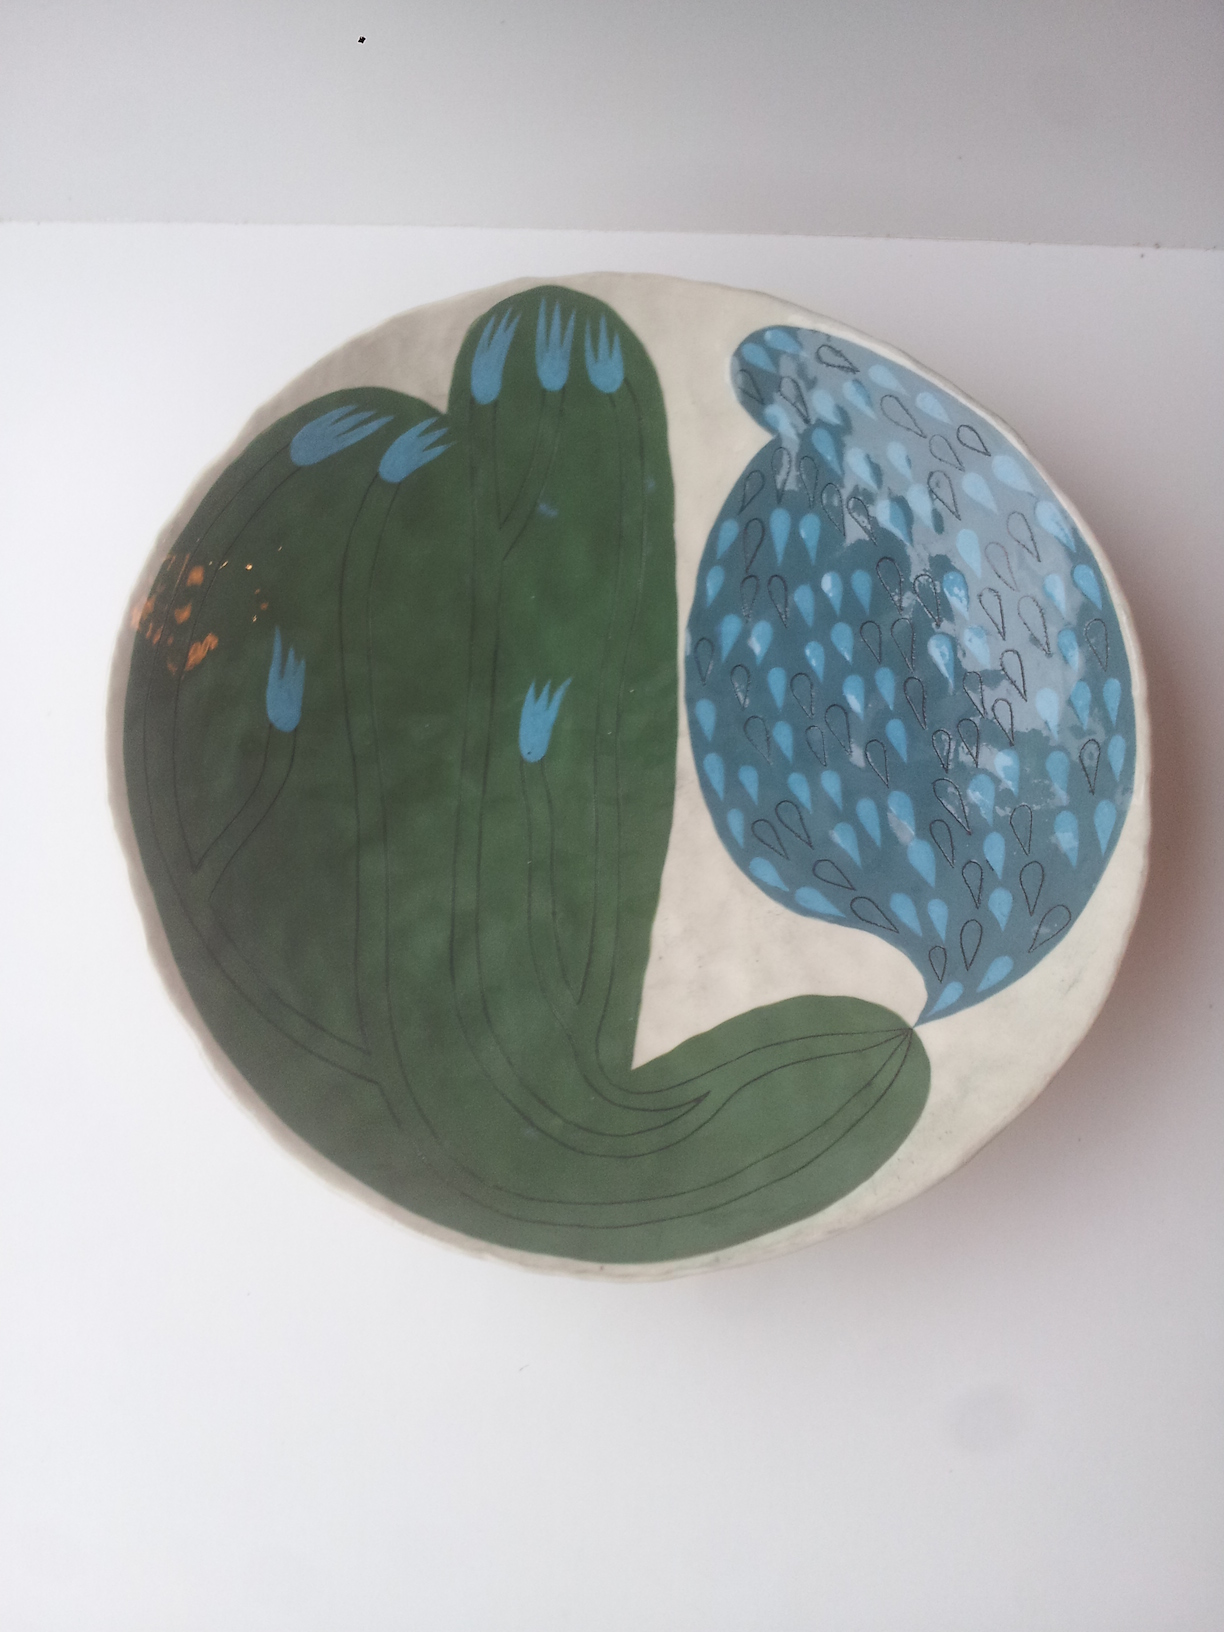 Andrew Ludick, Abstract Plant Bowl green and blue, glazed ceramic, 25cm, EUR 270 SOLD